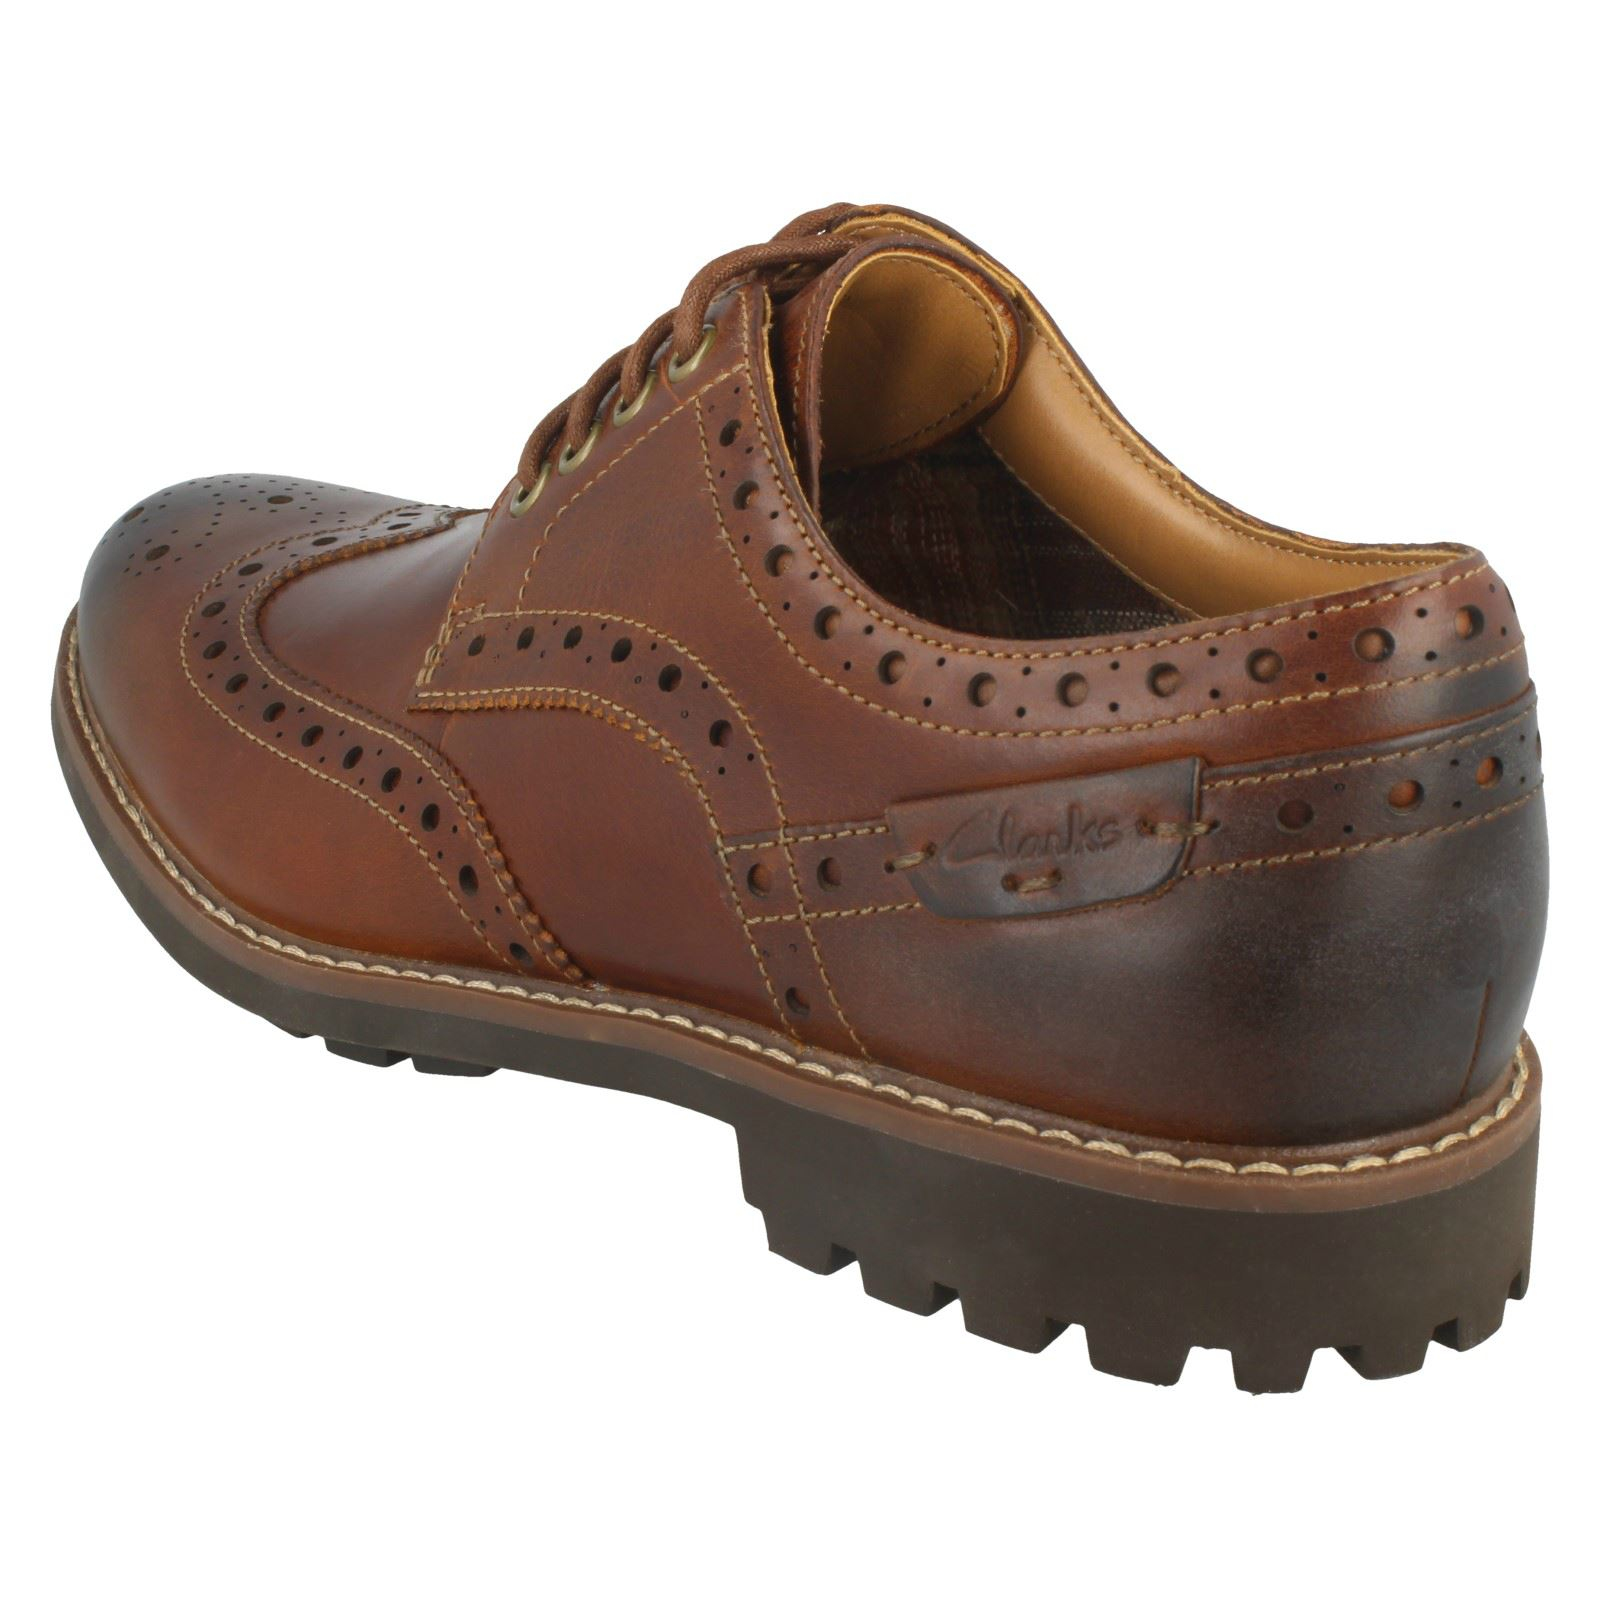 Dark Clarks para marrón hombre cordones Shoes cuero Montacute Tan Formales Wing de Brogue con x4Px6